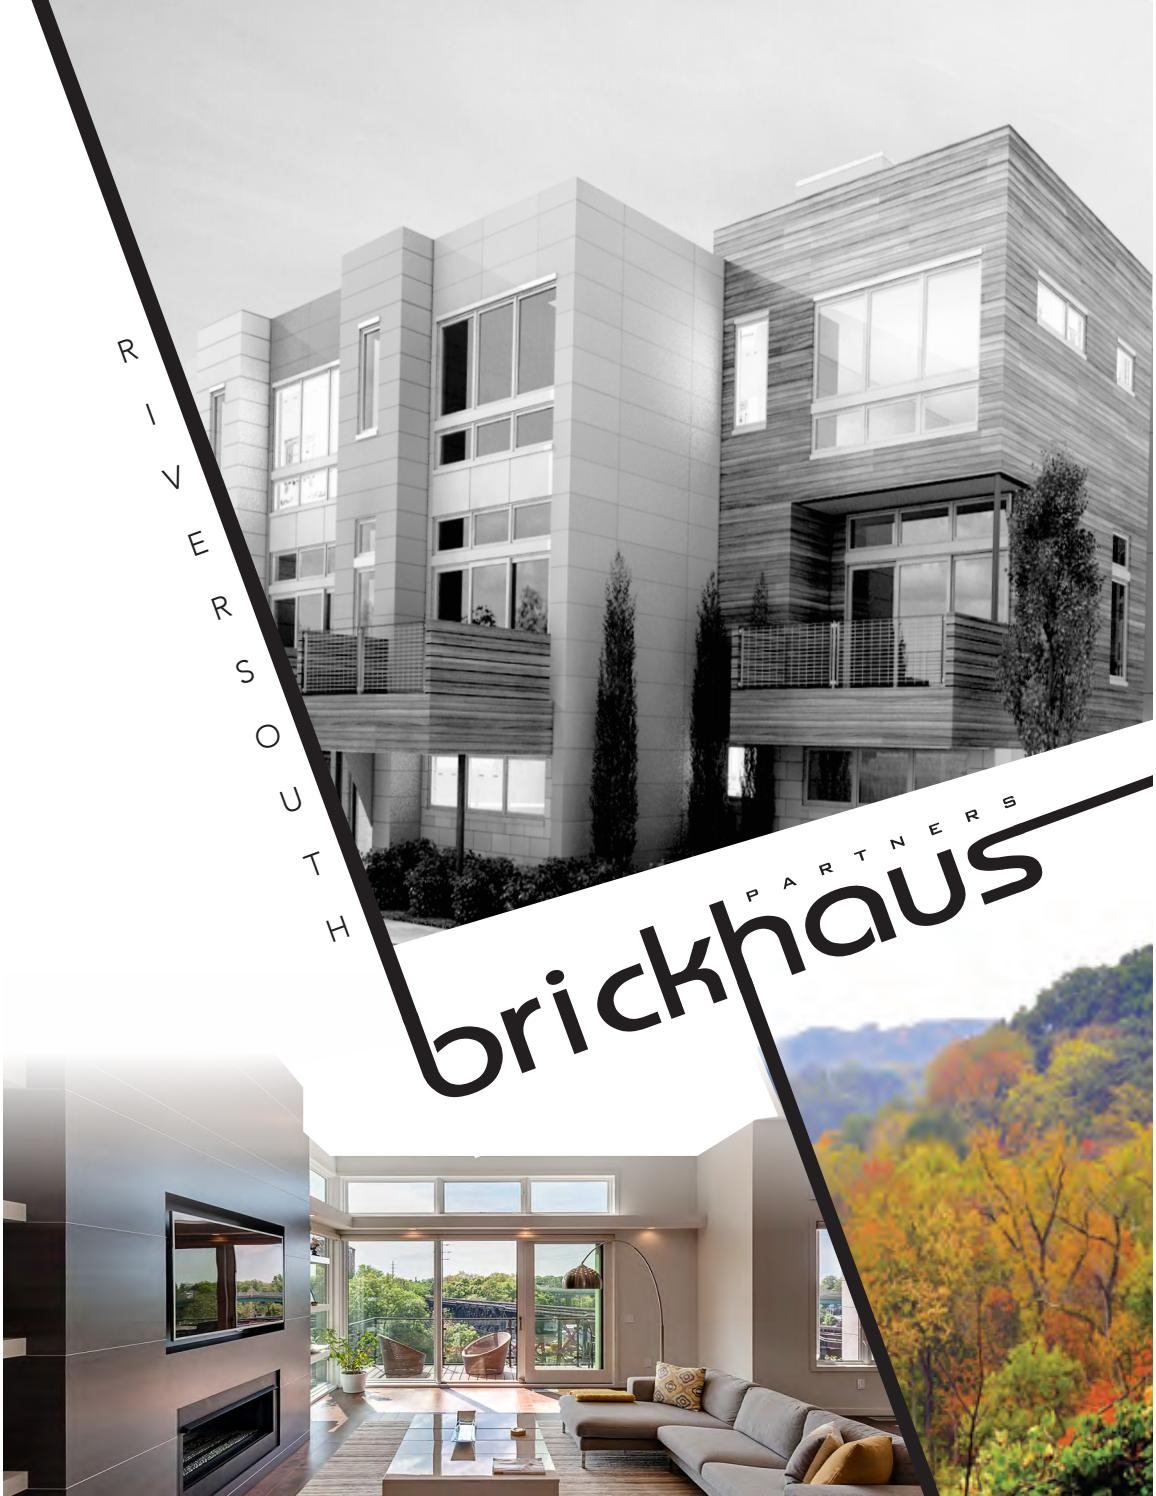 RiverSouth Modern Ecohomes by Brickhaus Partners